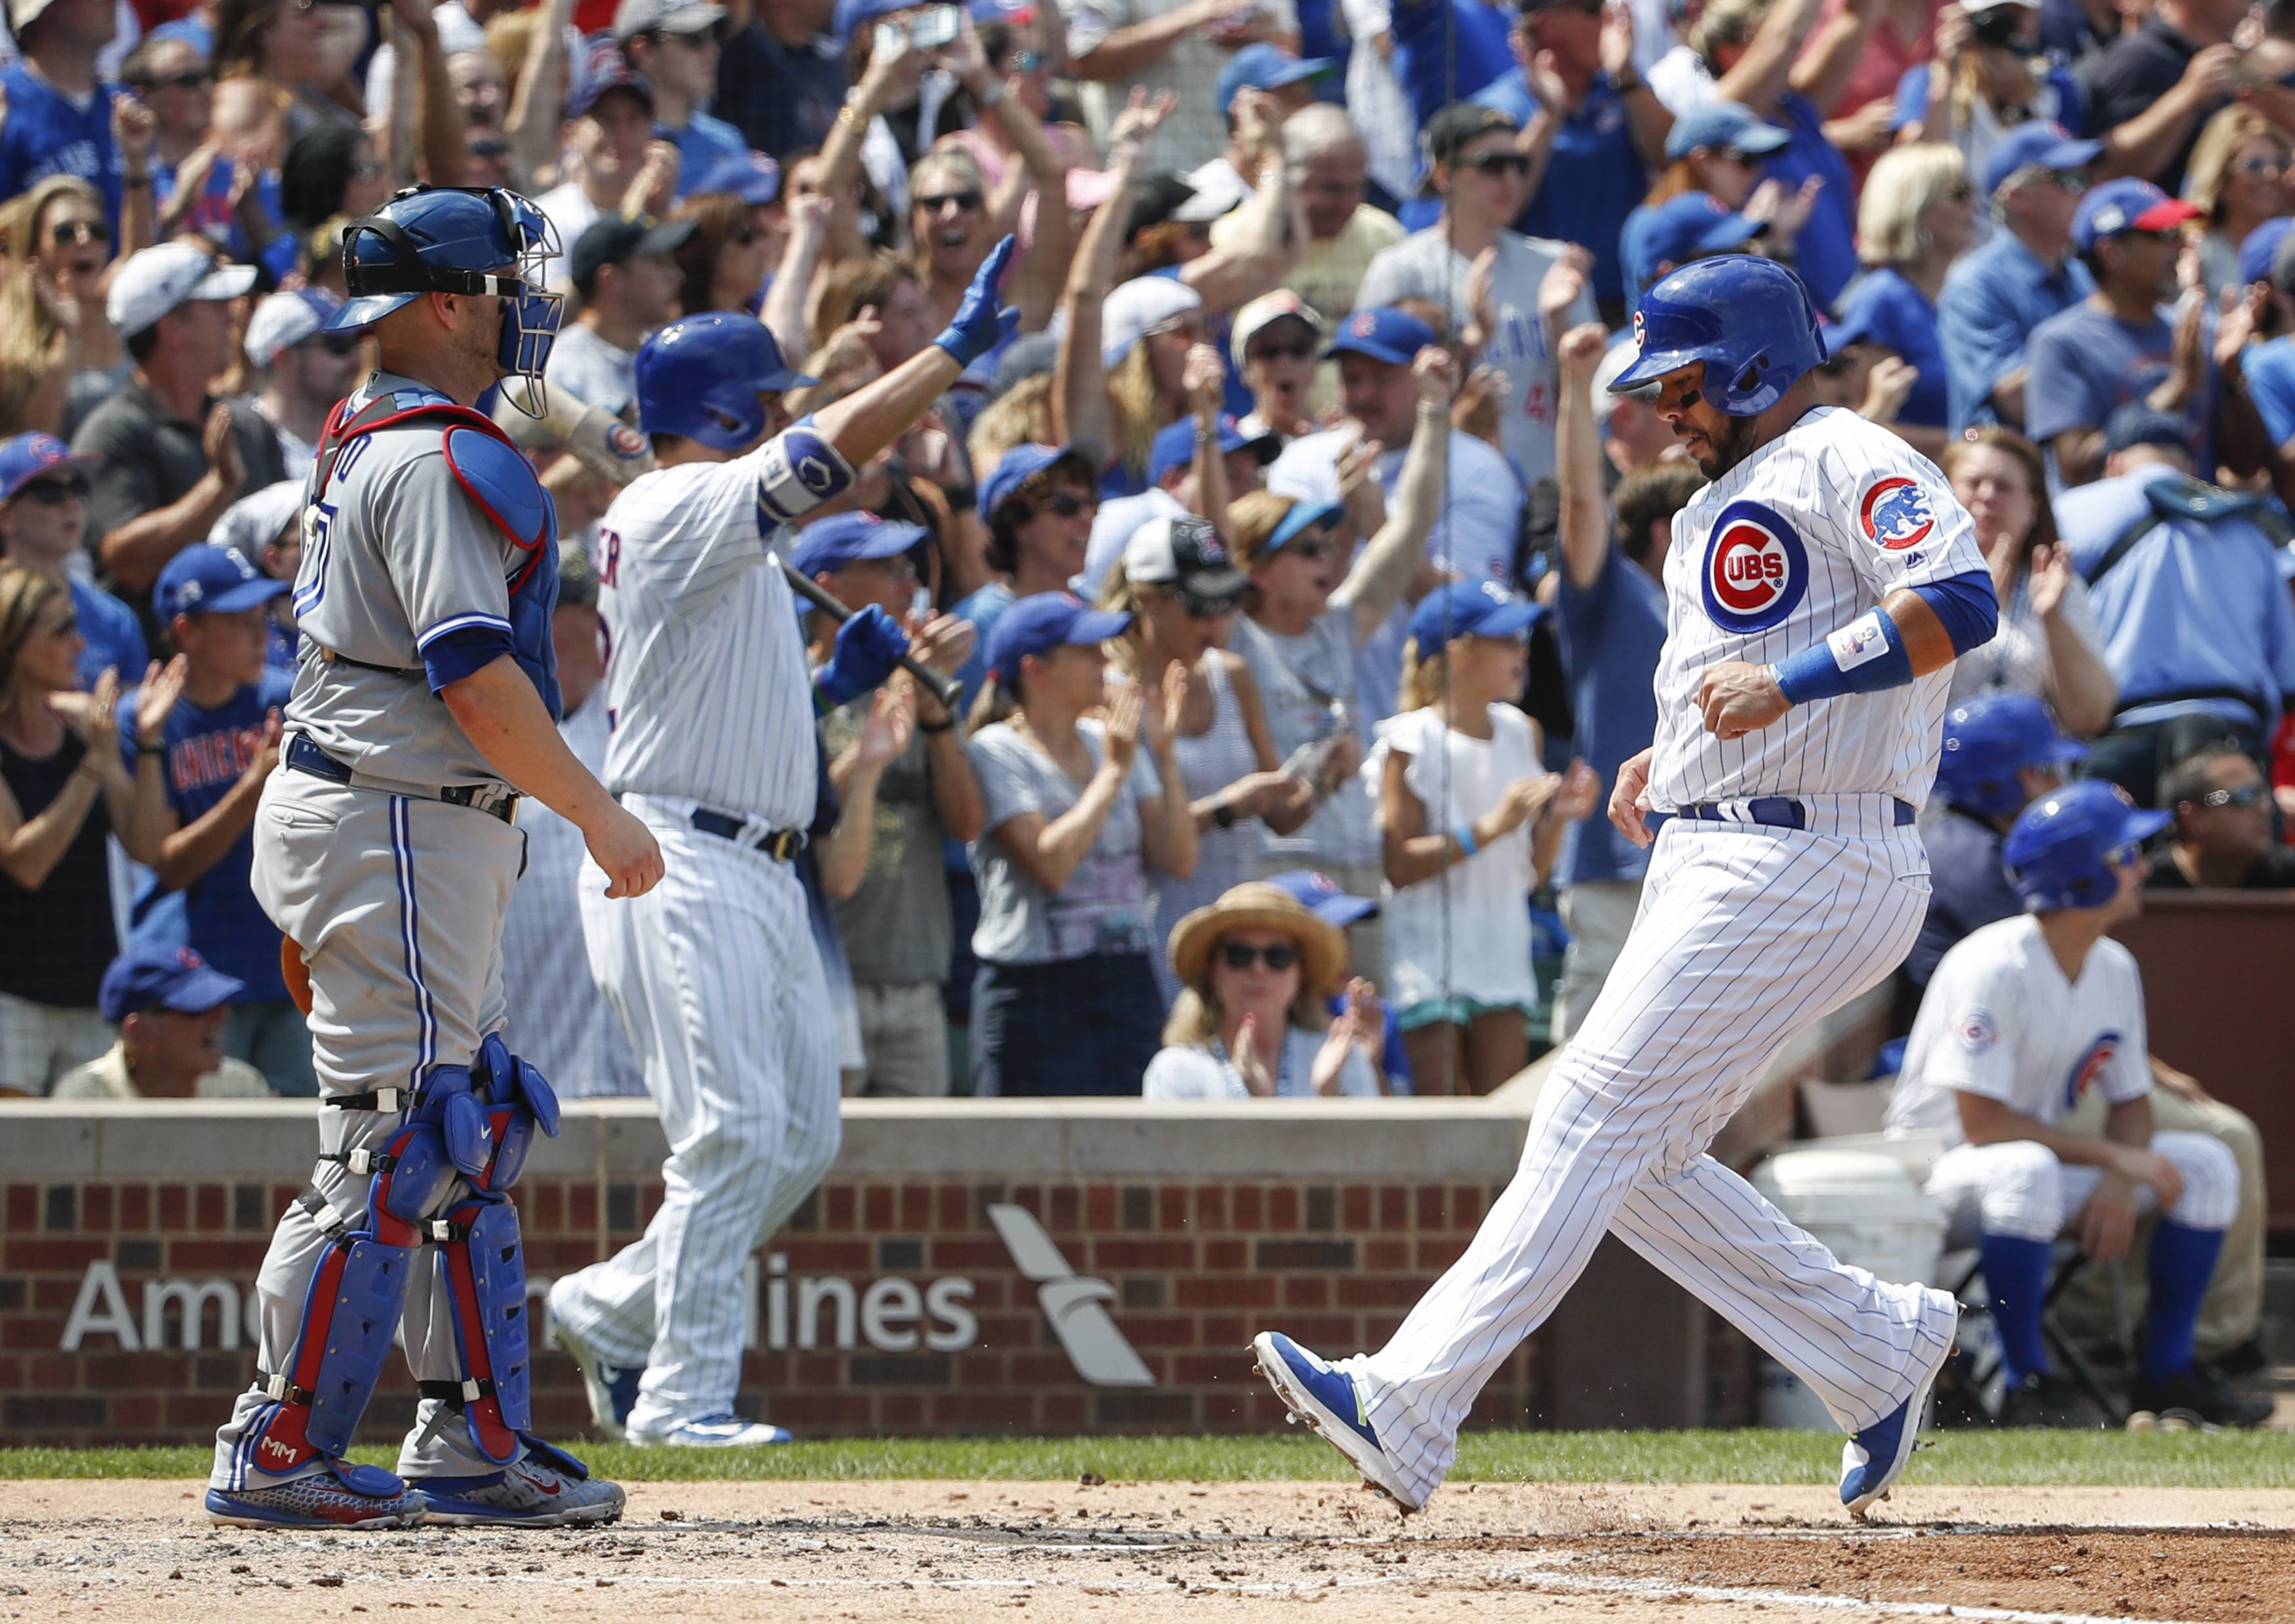 Chicago Cubs' Rene Rivera, right, scores on a three-RBI double hit by Albert Almora Jr. off Toronto Blue Jays' Marco Estrada during the third inning of a baseball game, Sunday, Aug. 20, 2017, in Chicago. (AP Photo/Kamil Krzaczynski)